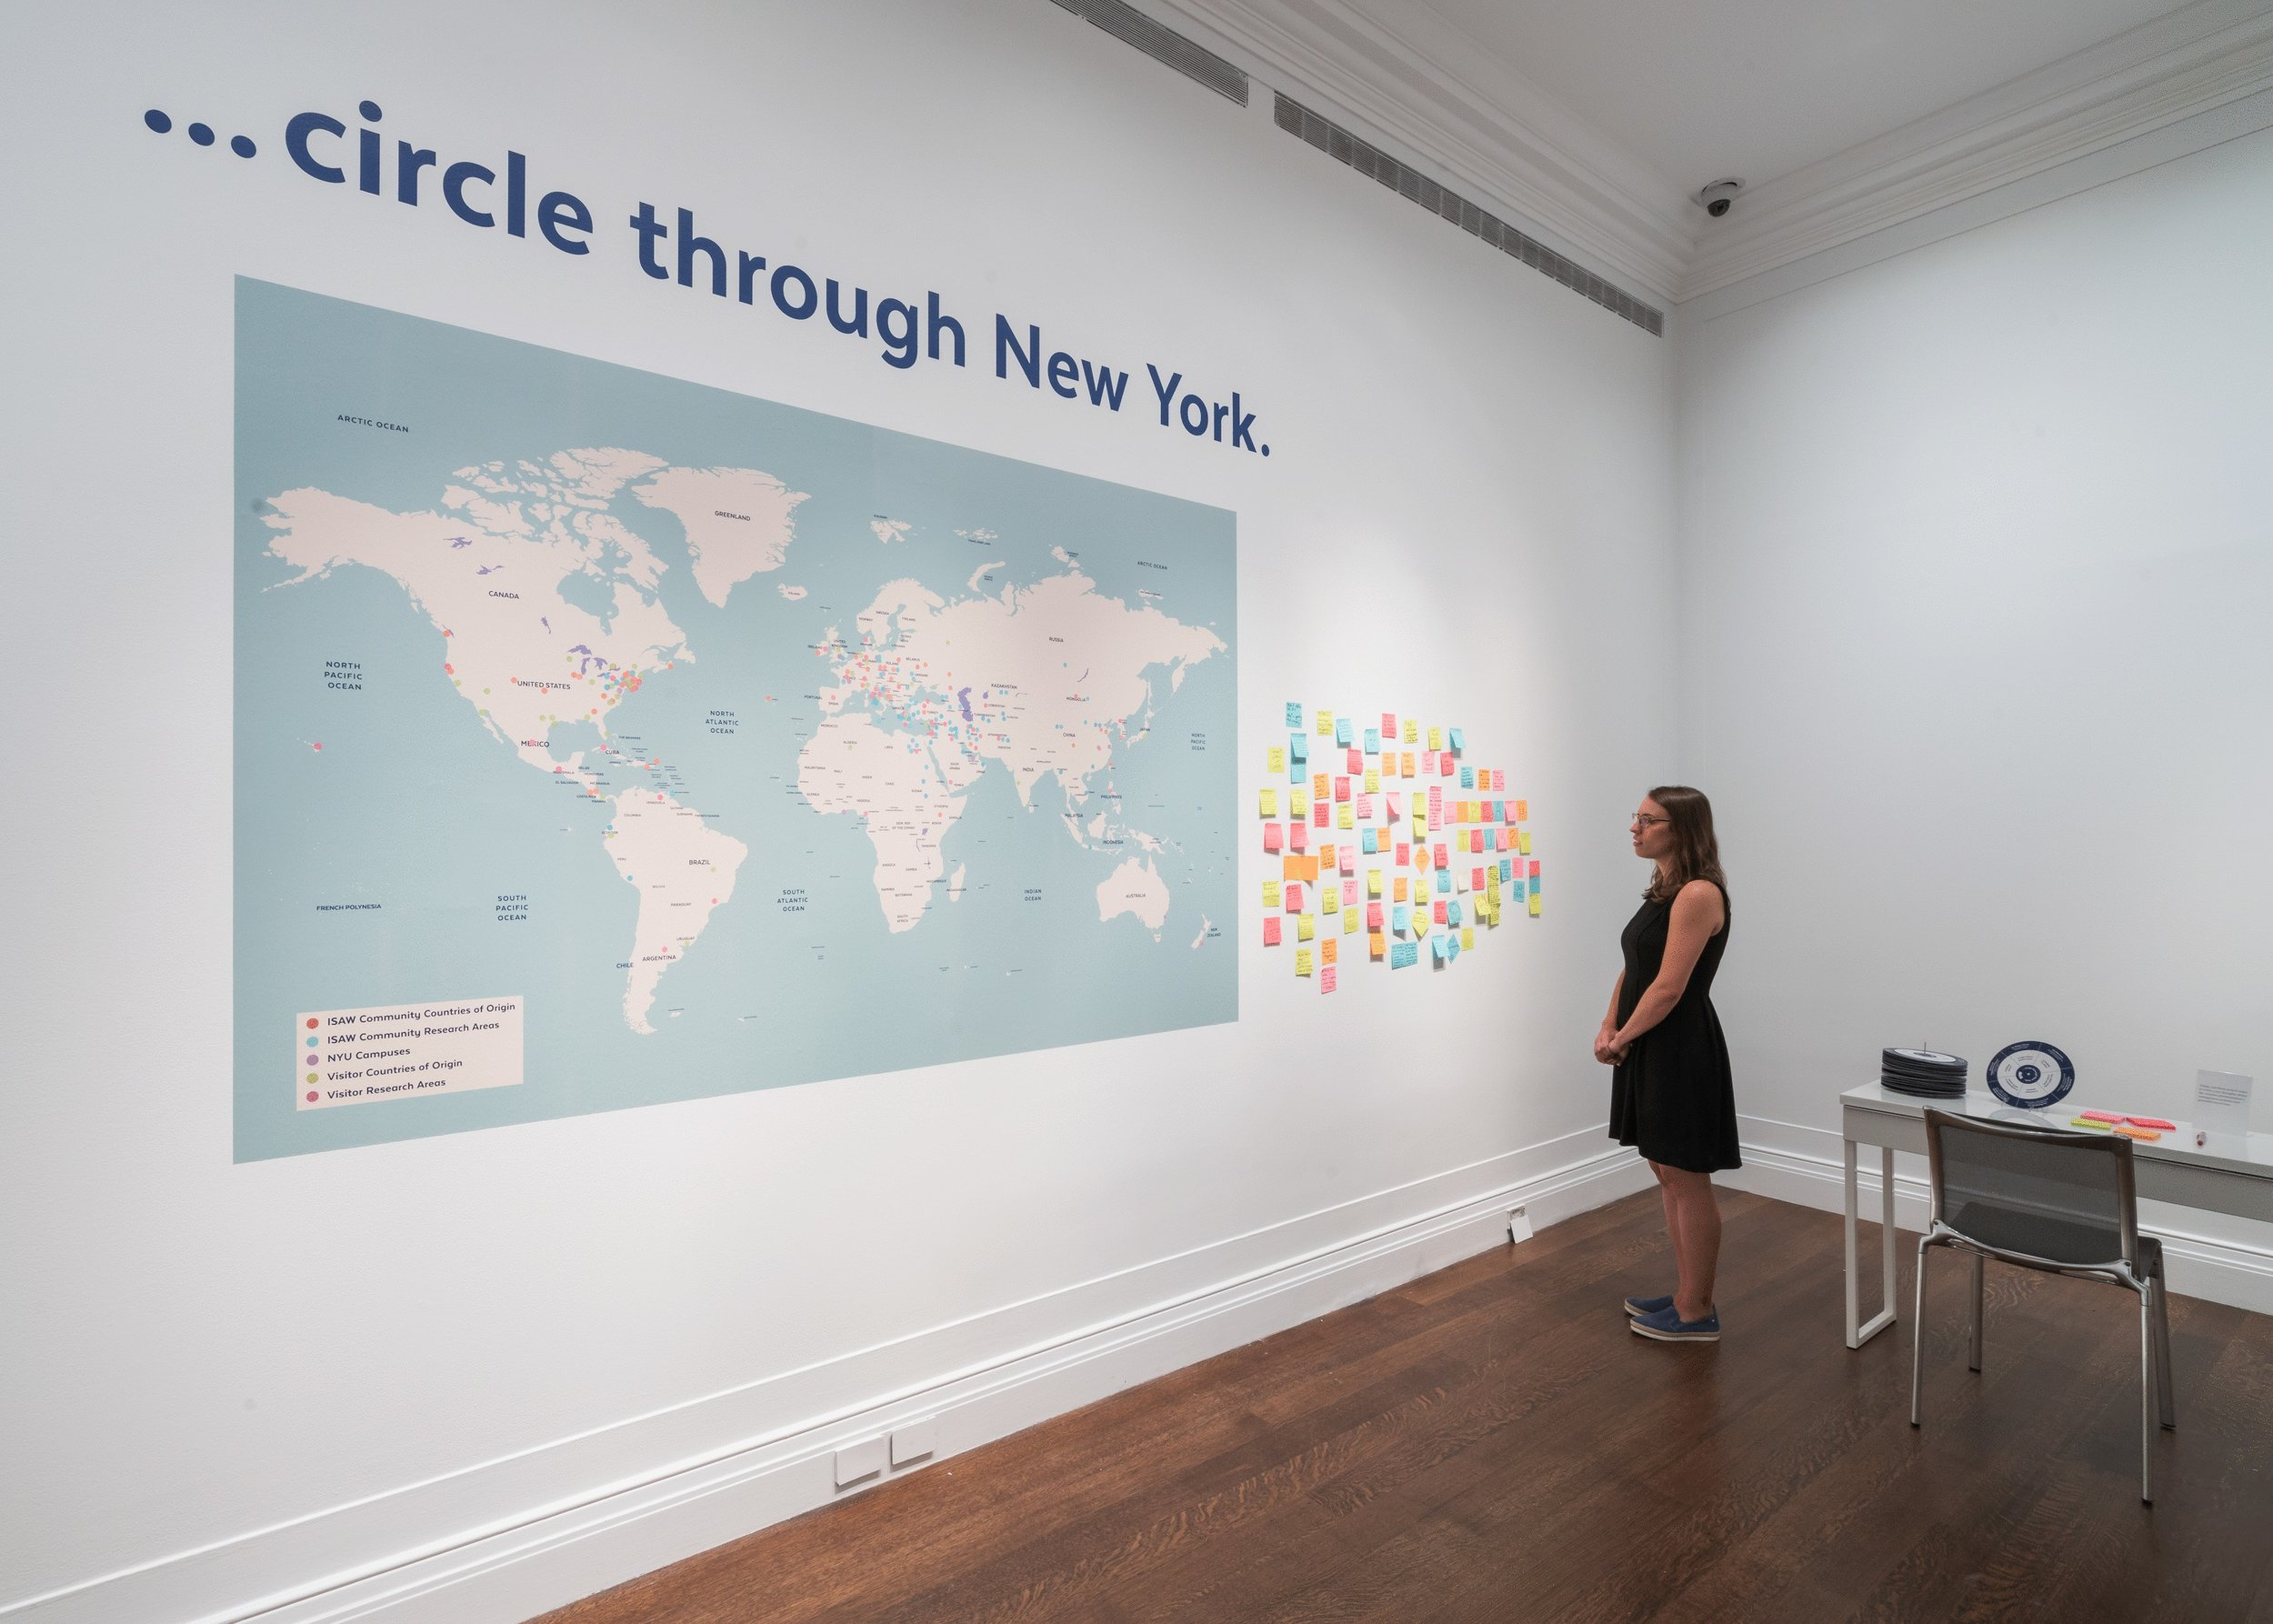 Circle Through New York-exh_ph142.jpg